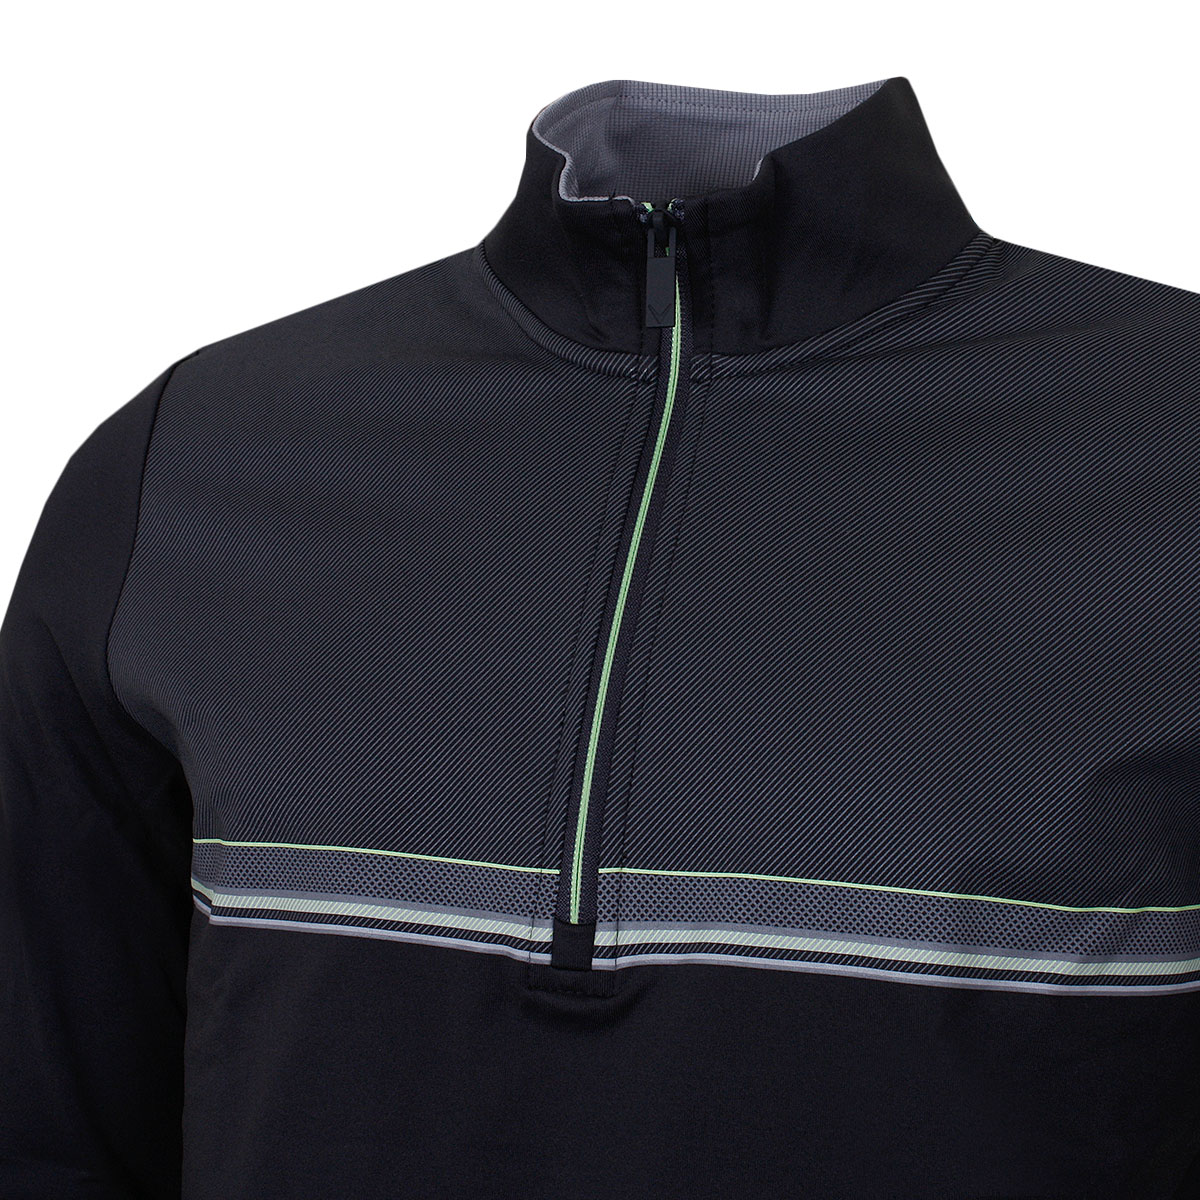 Callaway-Golf-Mens-Print-Chill-Out-Fleece-Lined-1-4-Zip-Sweater-46-OFF-RRP thumbnail 4